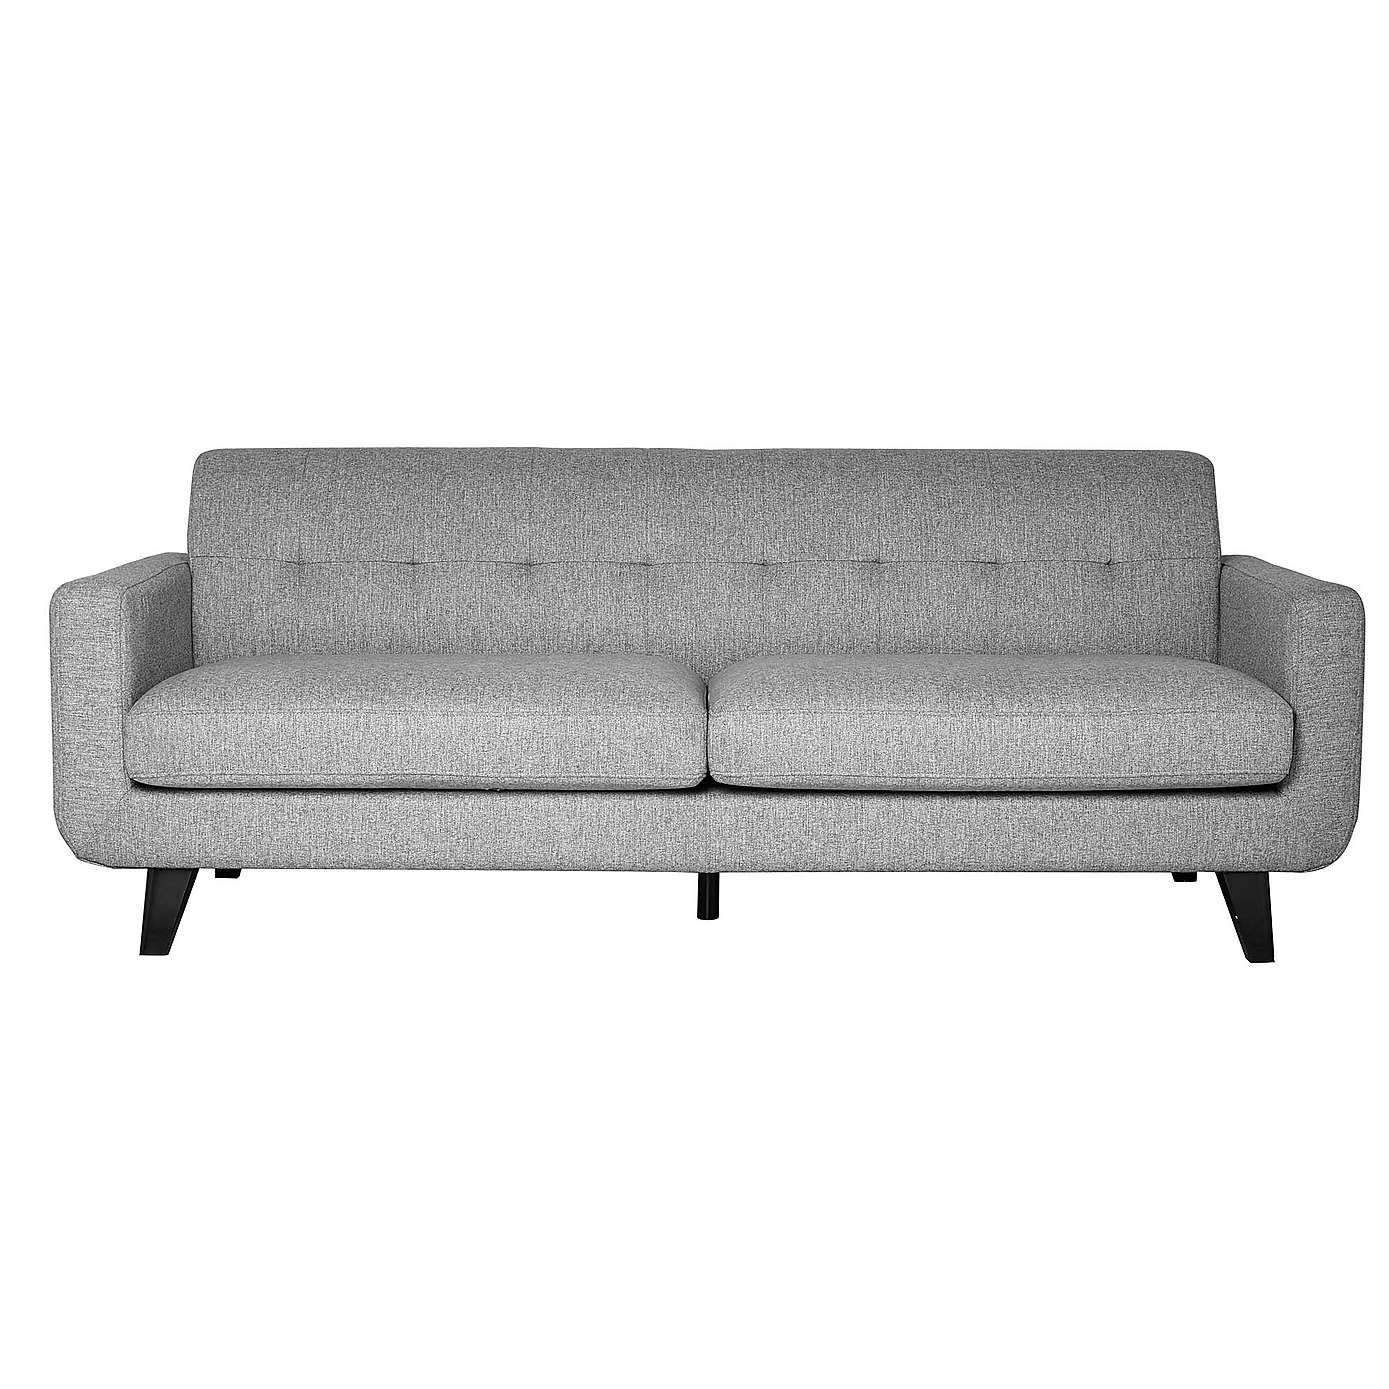 Bexter Grey 3 Seater Sofa | Dunelm